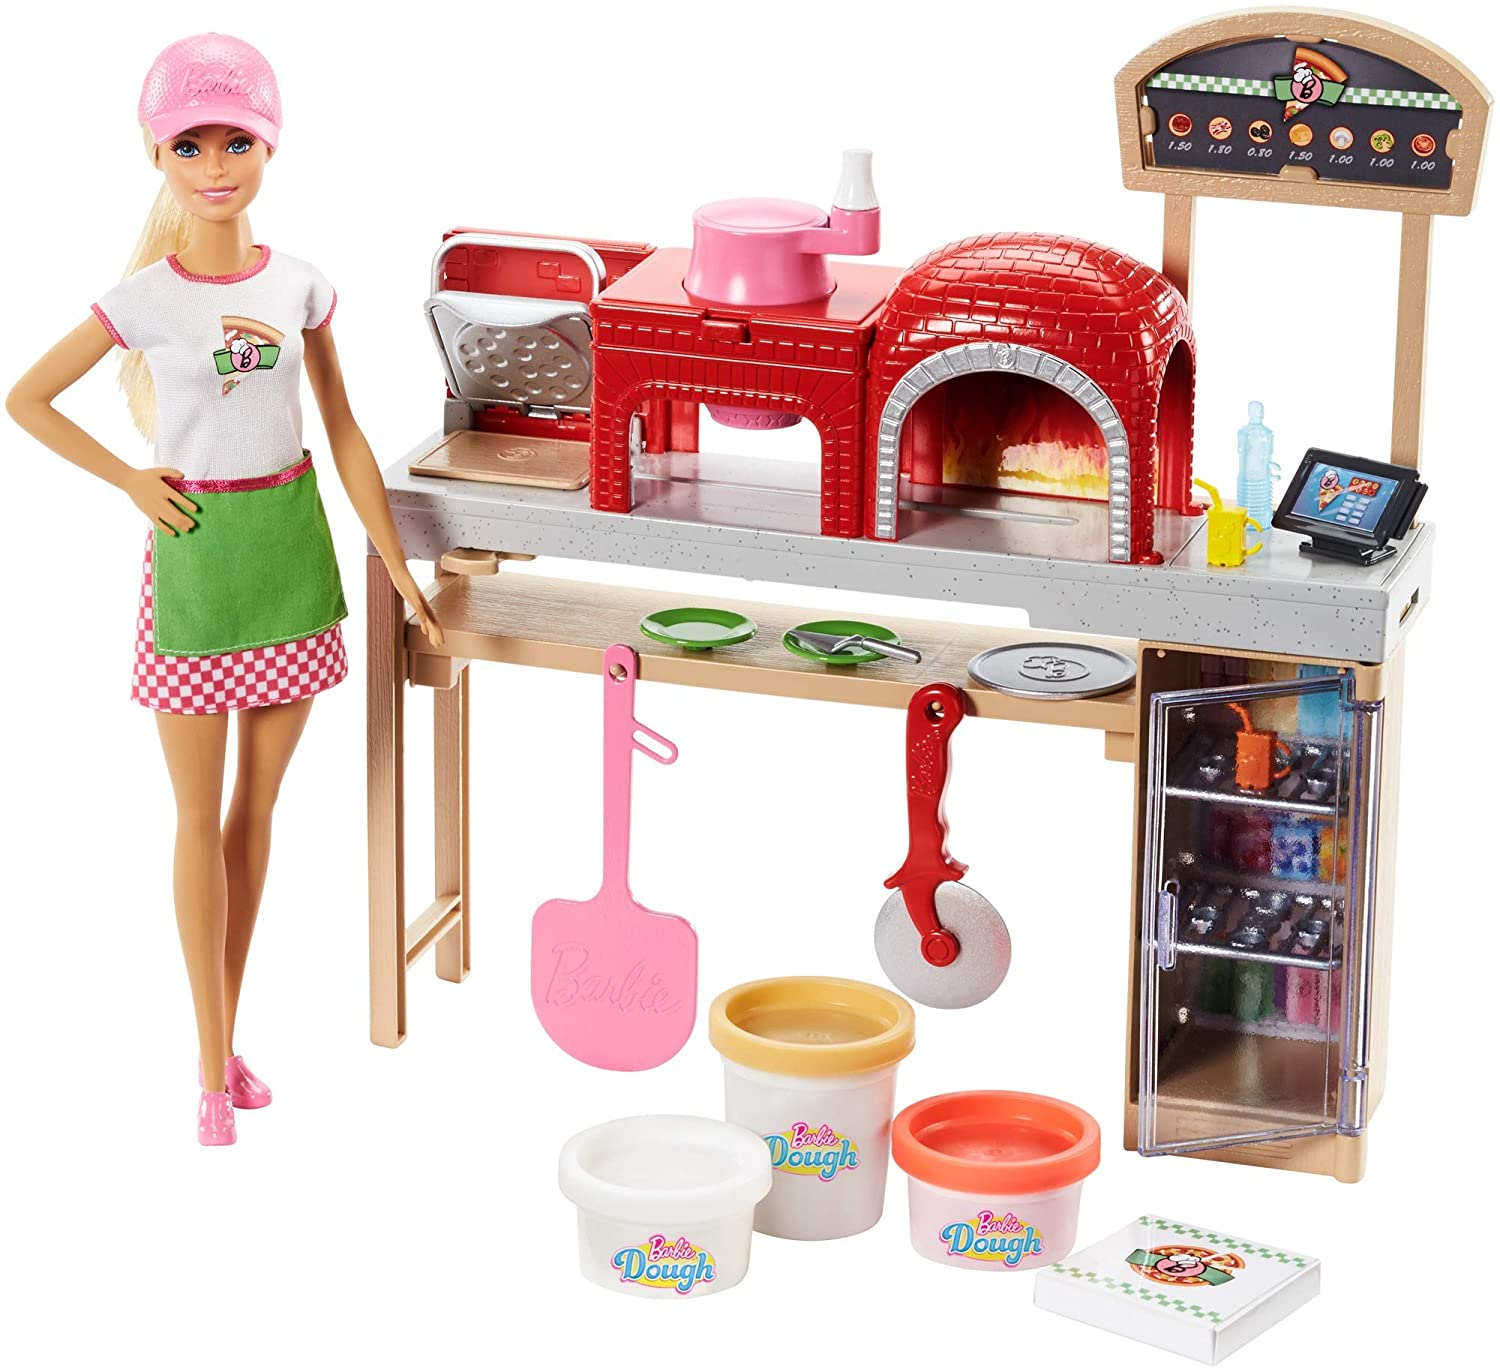 Barbie Pizza Chef Doll and Playset, Blonde